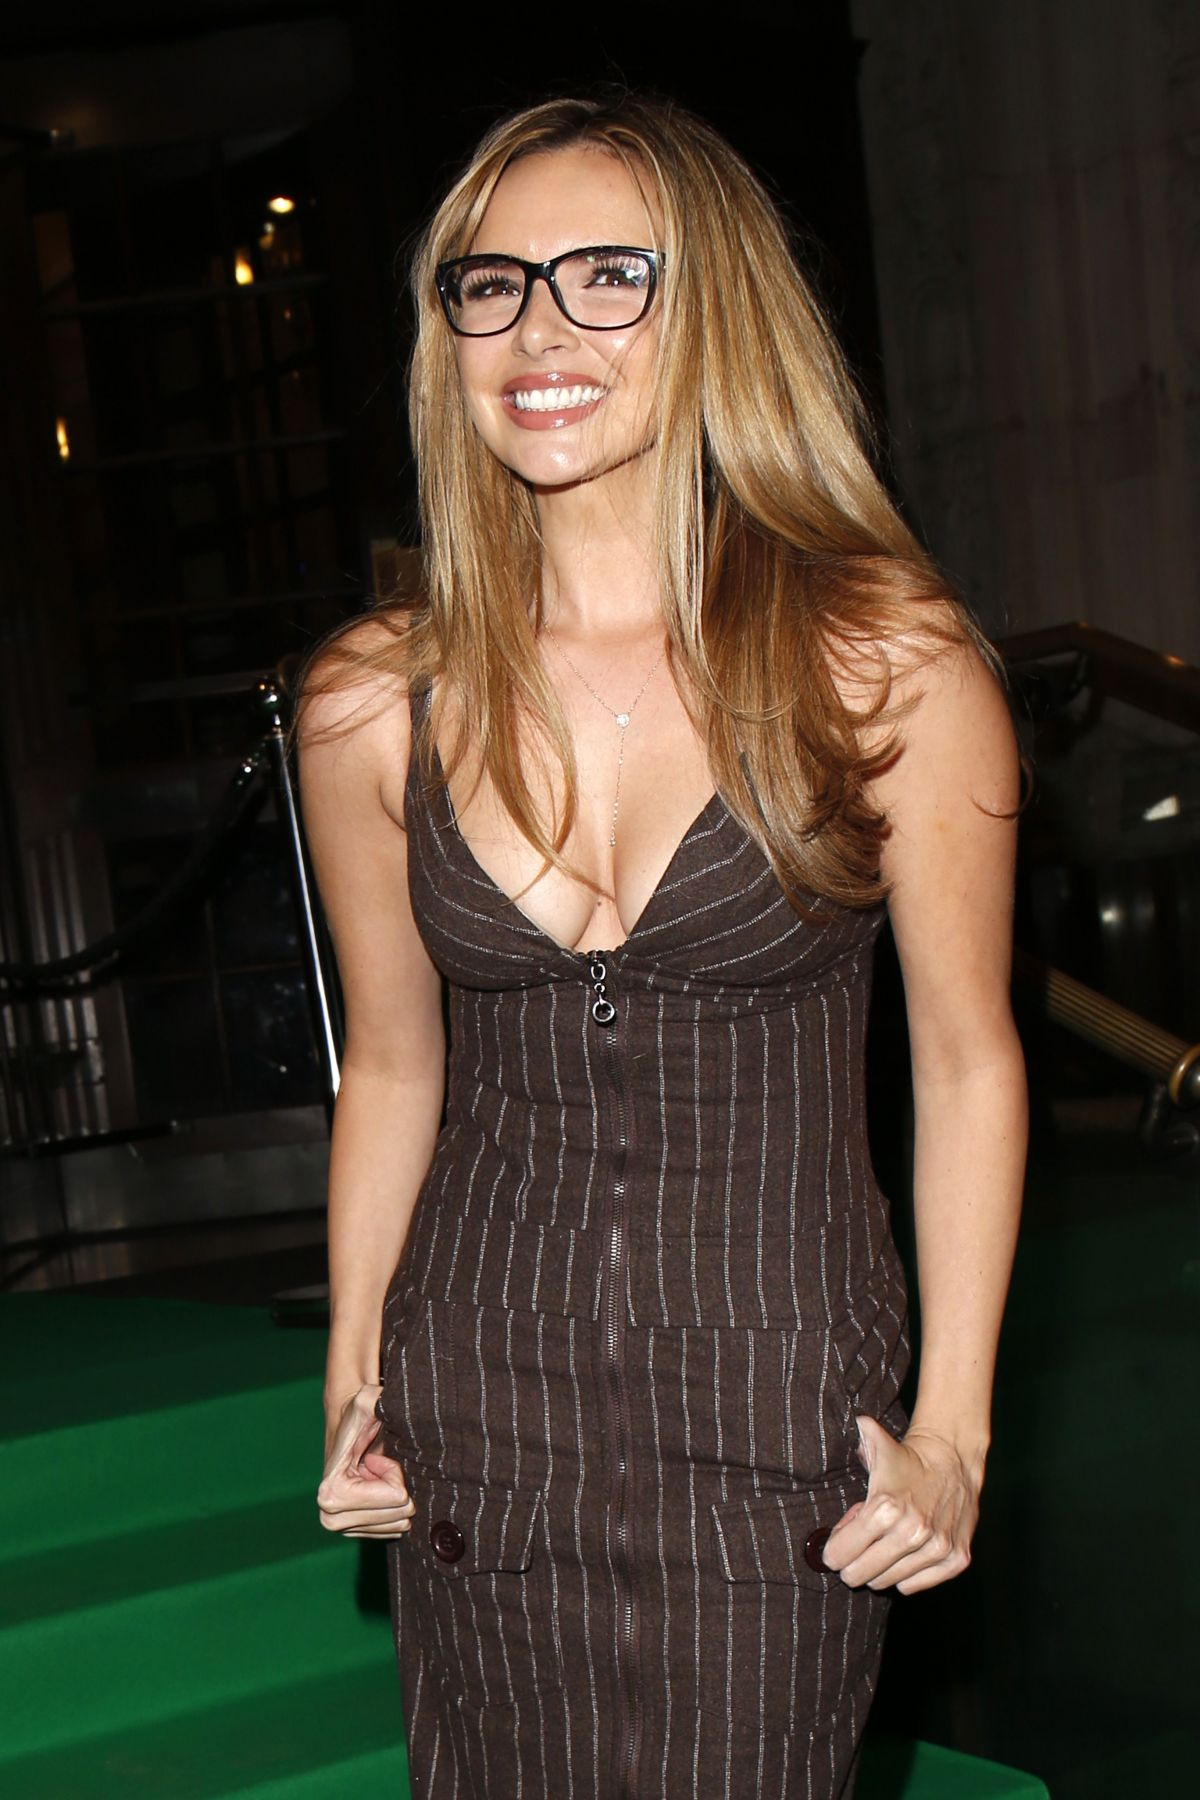 Nadine Coyle sexy lady picture